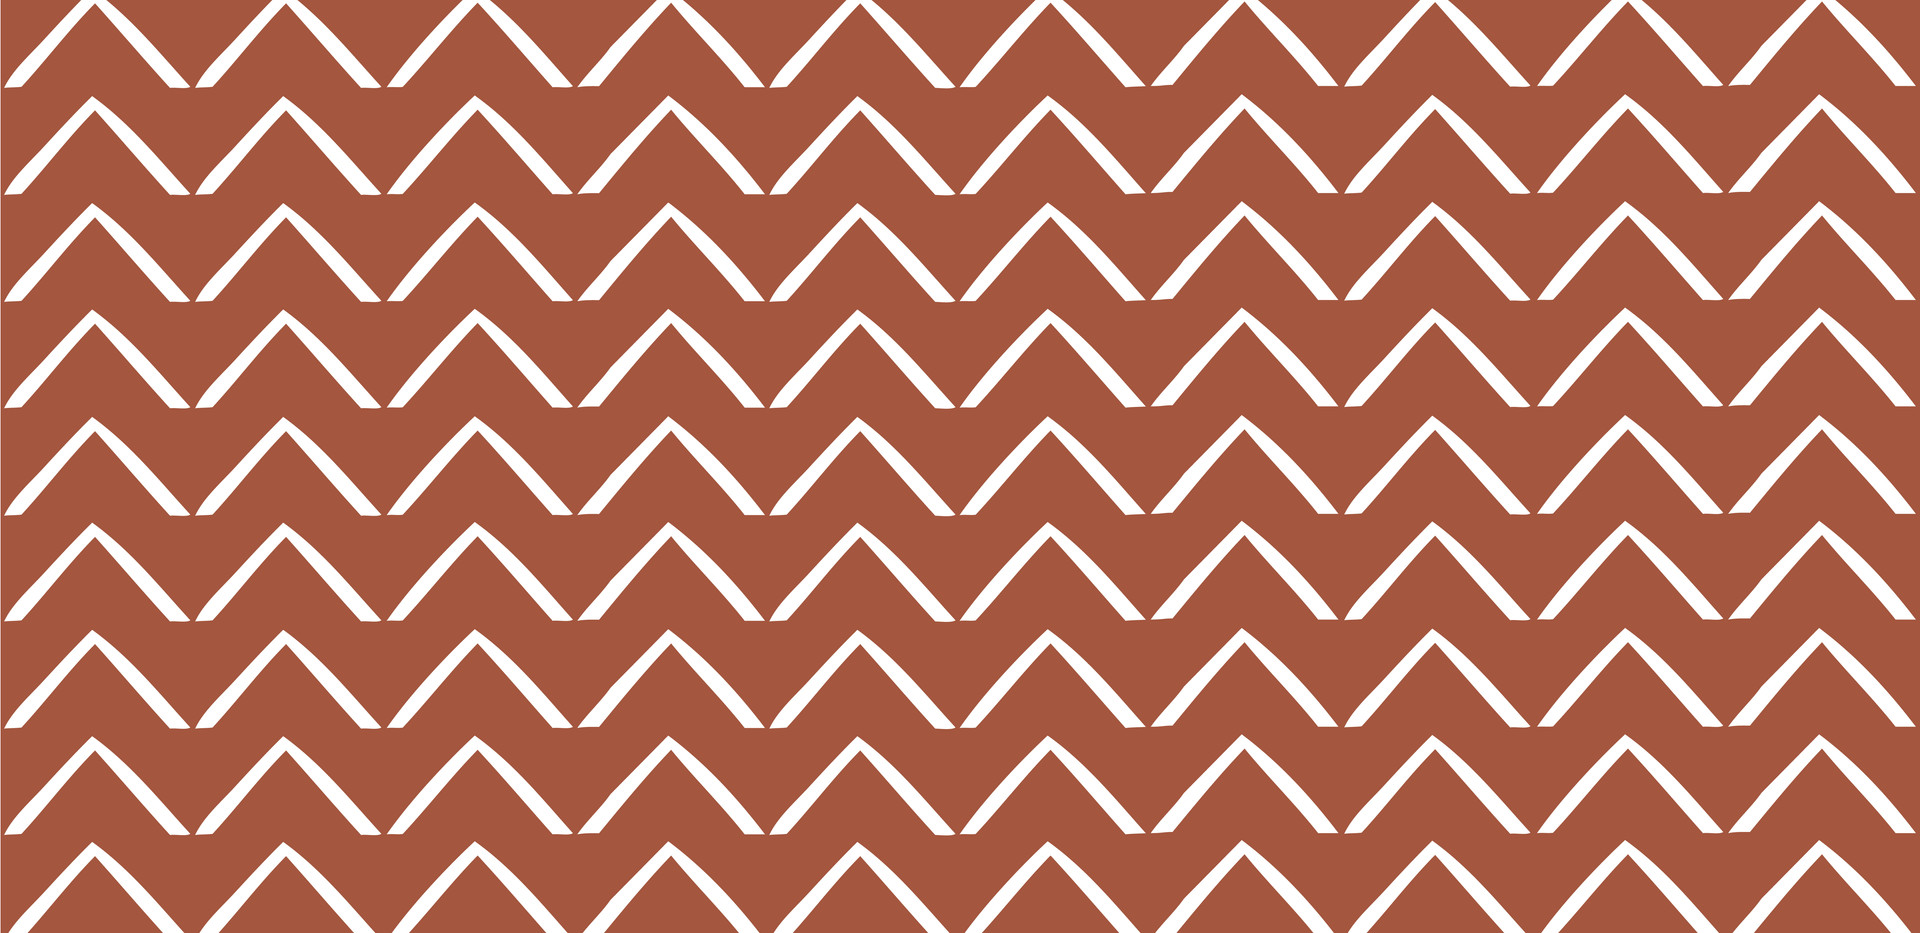 ZigZag Arrows . Brick